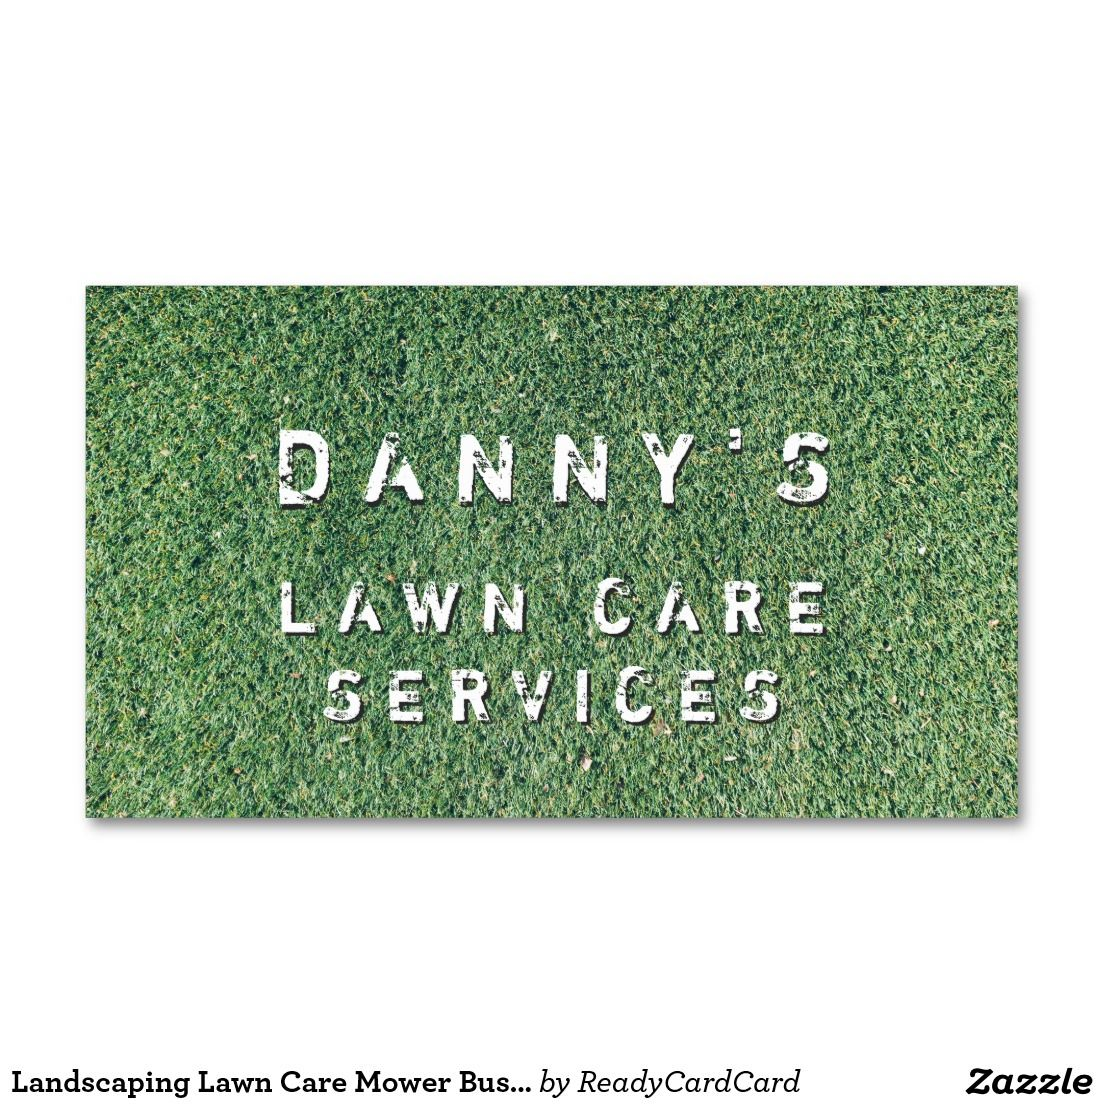 Landscaping lawn care mower business card template lawn care landscaping lawn care mower business card template cheaphphosting Gallery